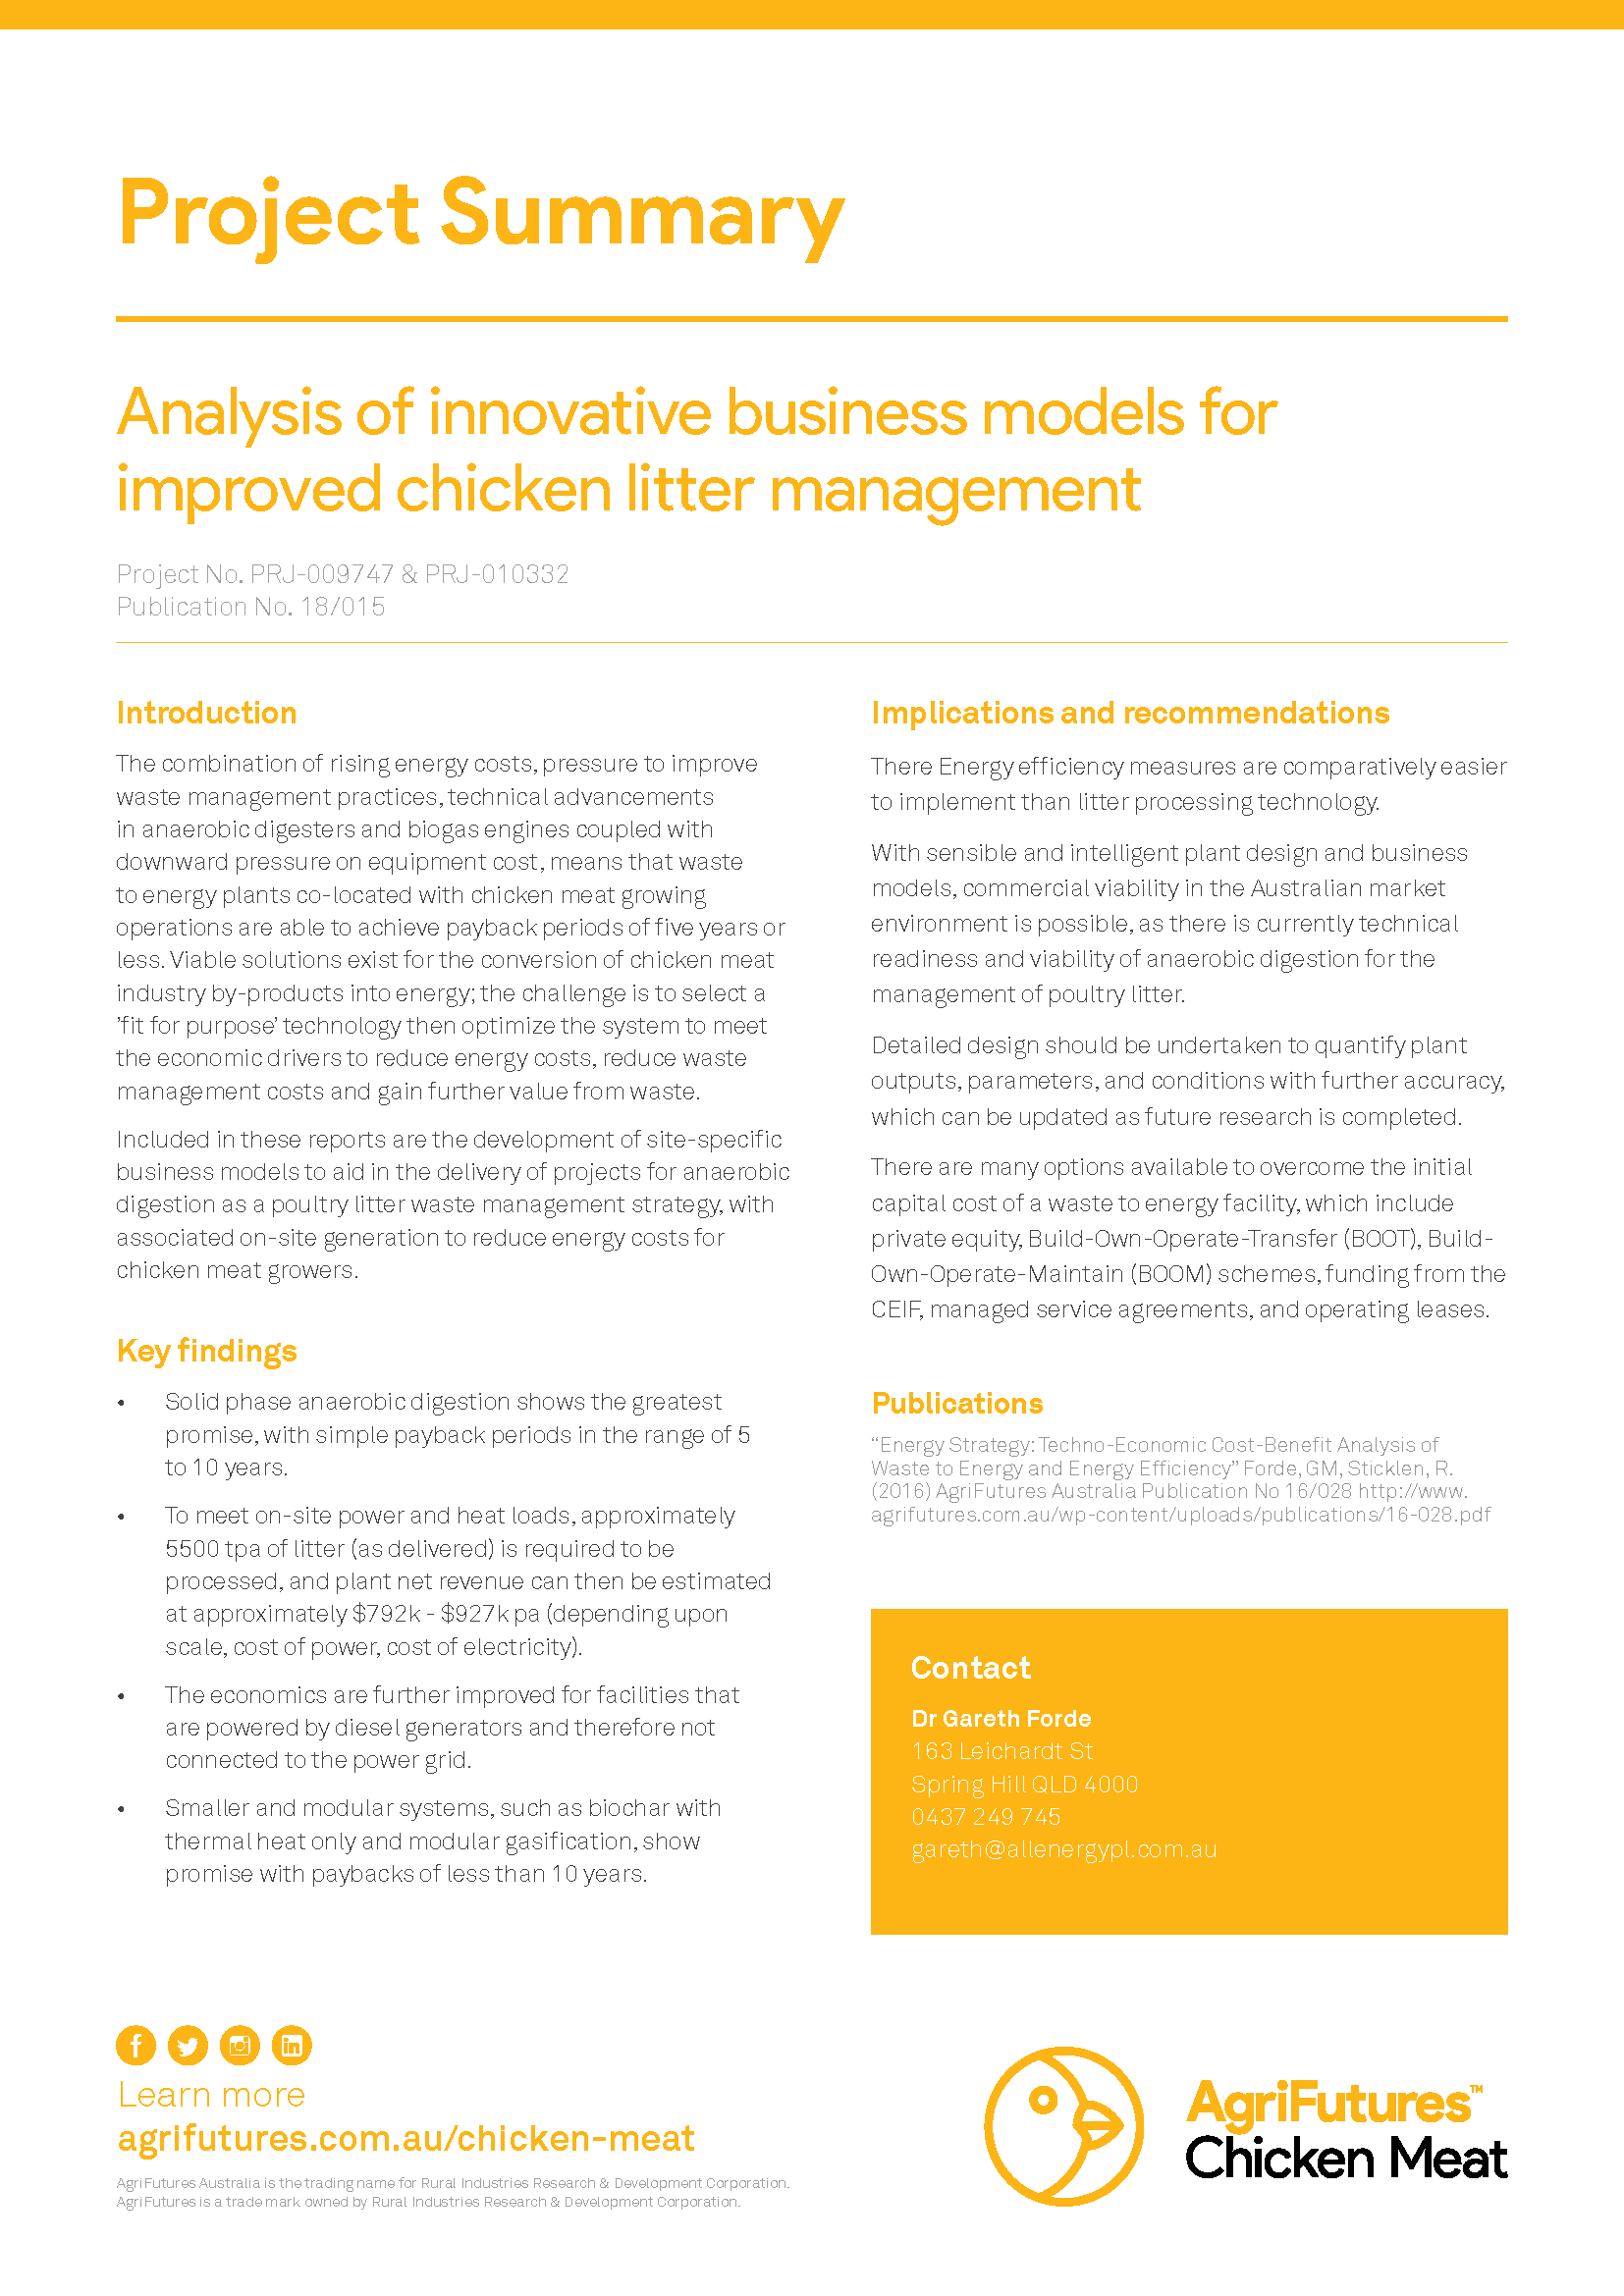 Project summary: Analysis of innovative business models for  improved chicken litter management - image